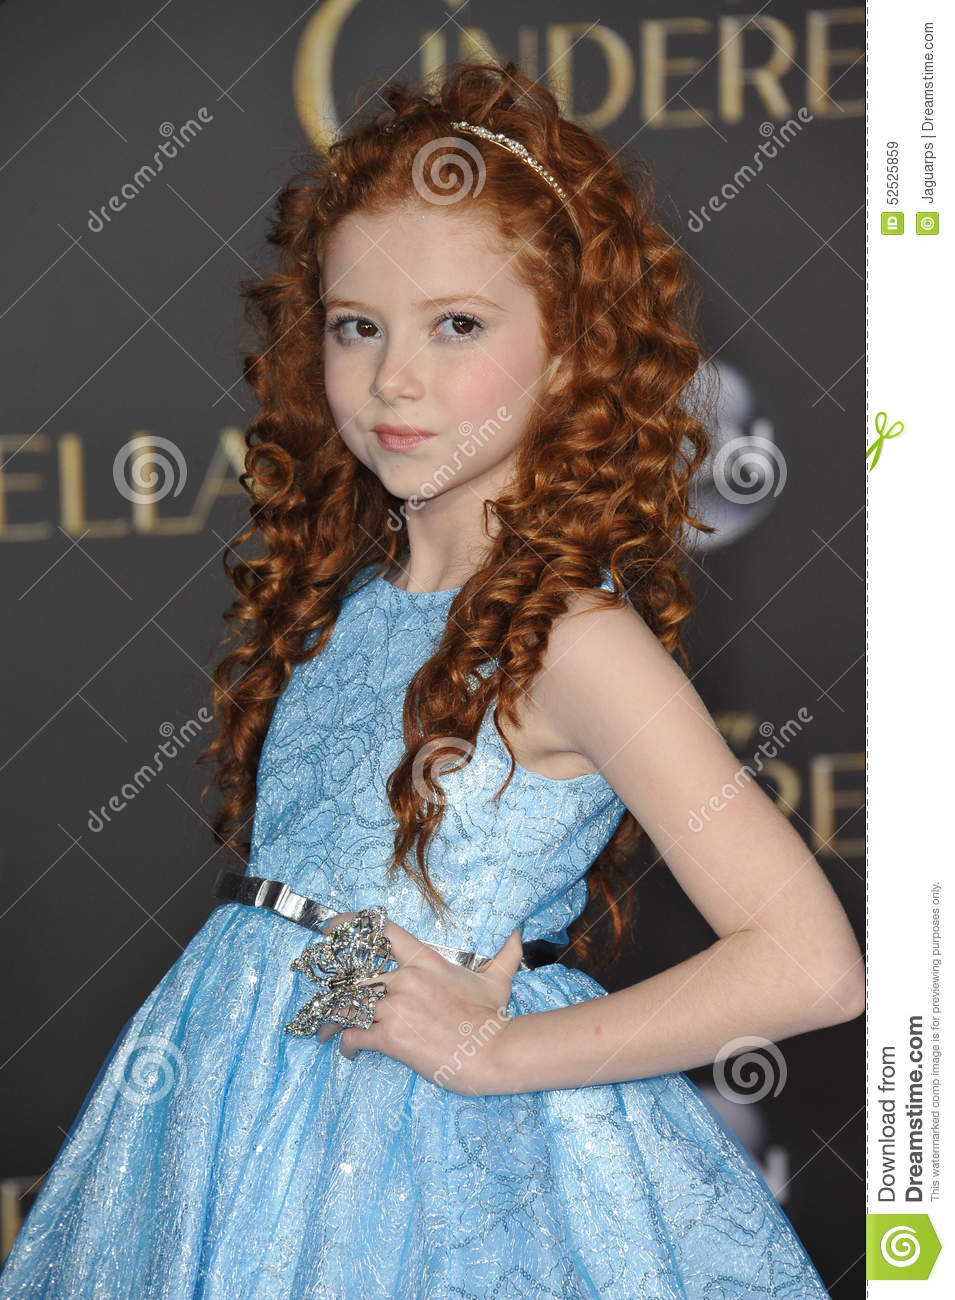 francesca capaldifrancesca capaldi 2016, francesca capaldi age, francesca capaldi tumblr, francesca capaldi instagram, francesca capaldi listal, francesca capaldi, francesca capaldi 2015, francesca capaldi facebook, francesca capaldi 2014, francesca capaldi twitter, francesca capaldi youtube, francesca capaldi dog with a blog, francesca capaldi imdb, francesca capaldi dancing, francesca capaldi vk, francesca capaldi height, francesca capaldi parents, francesca capaldi family, francesca capaldi edad, francesca capaldi singing